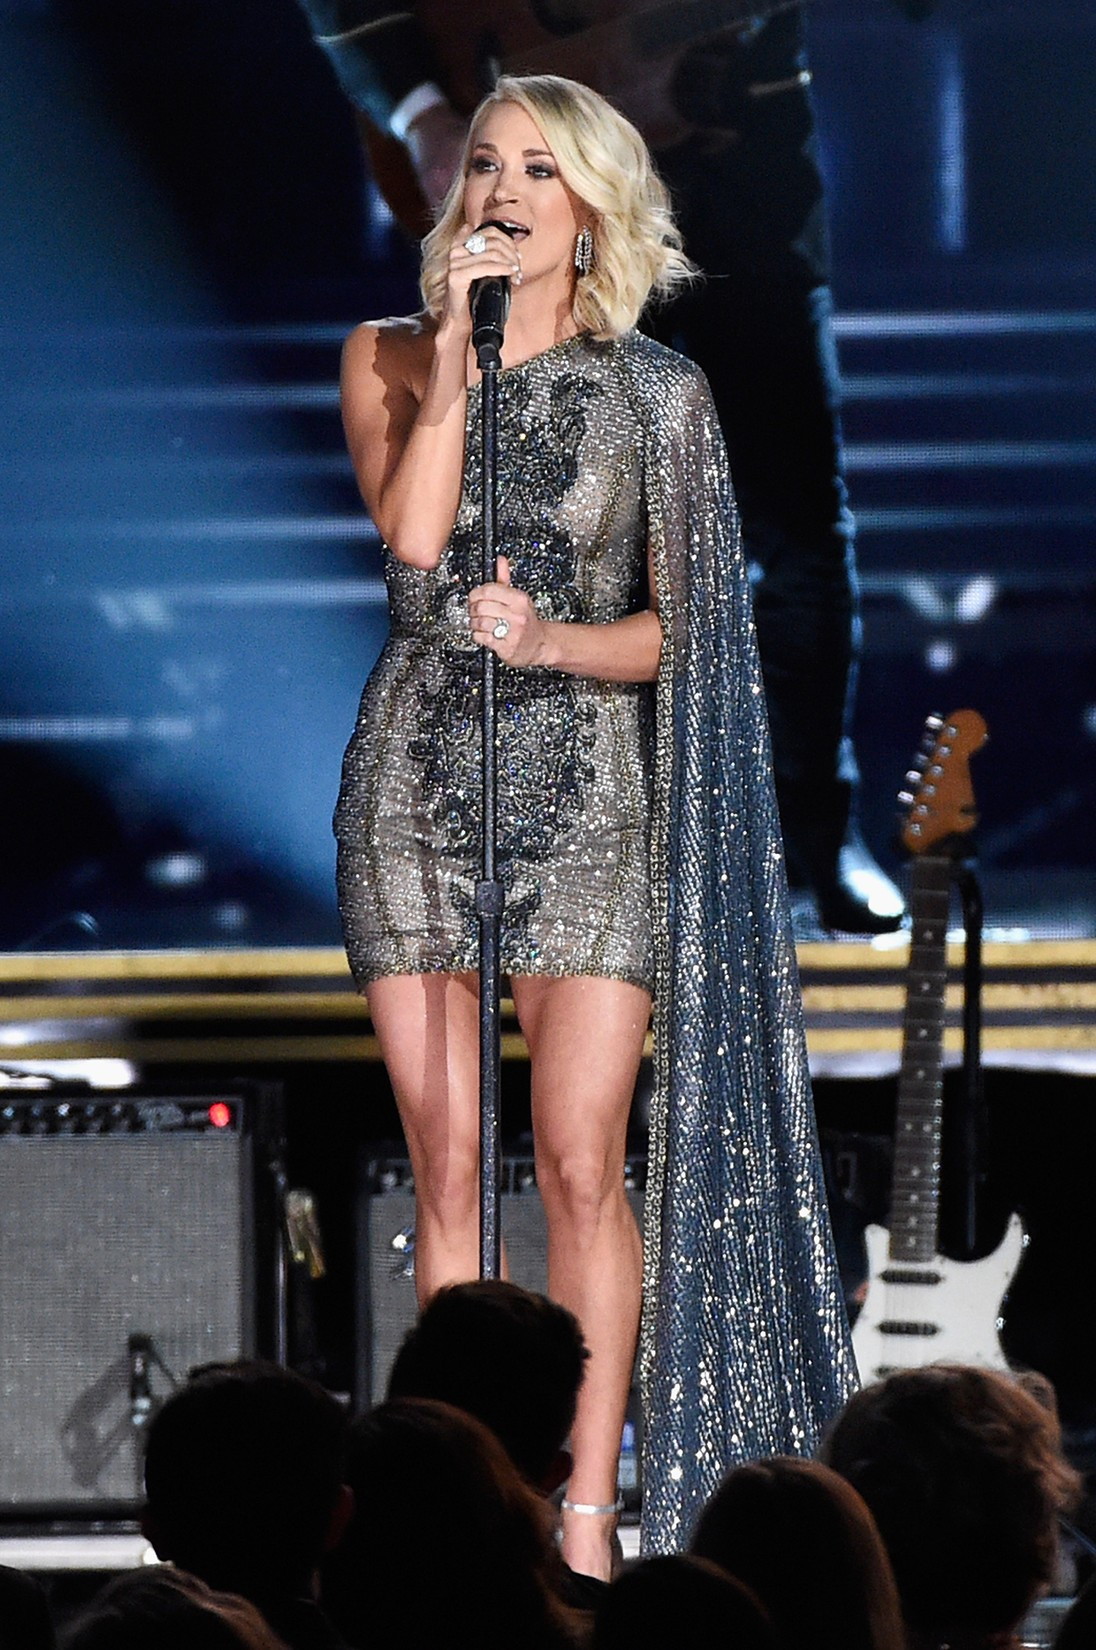 Carrie Underwood performs onstage at the 50th annual CMA Awards